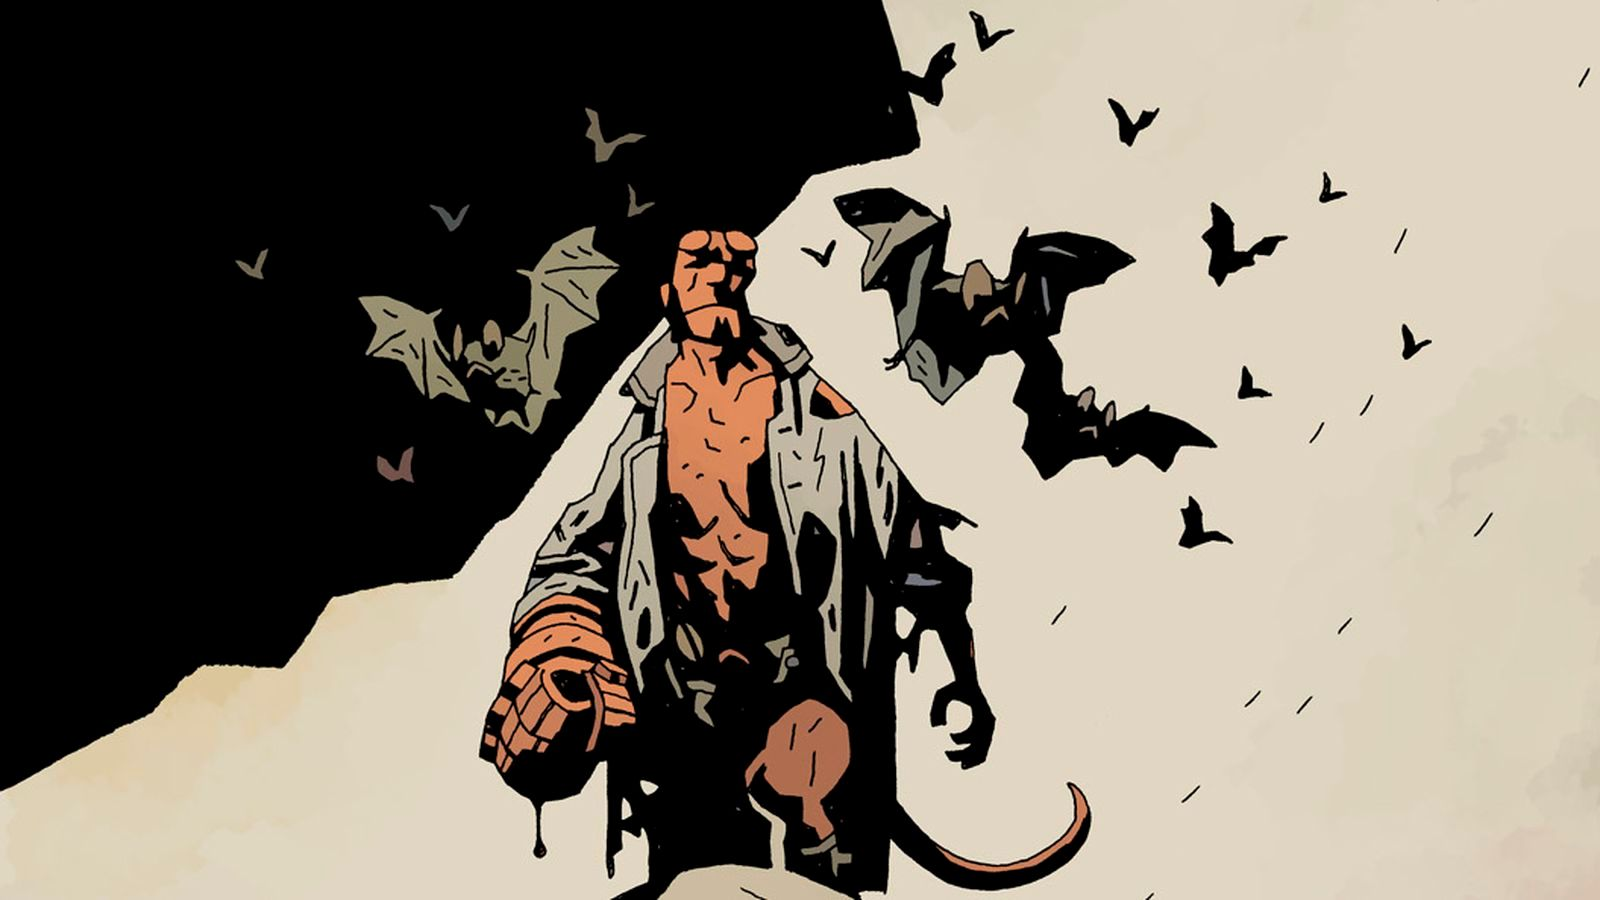 A rebooted Hellboy is the final nail in the coffin for Guillermo del Toro's third film